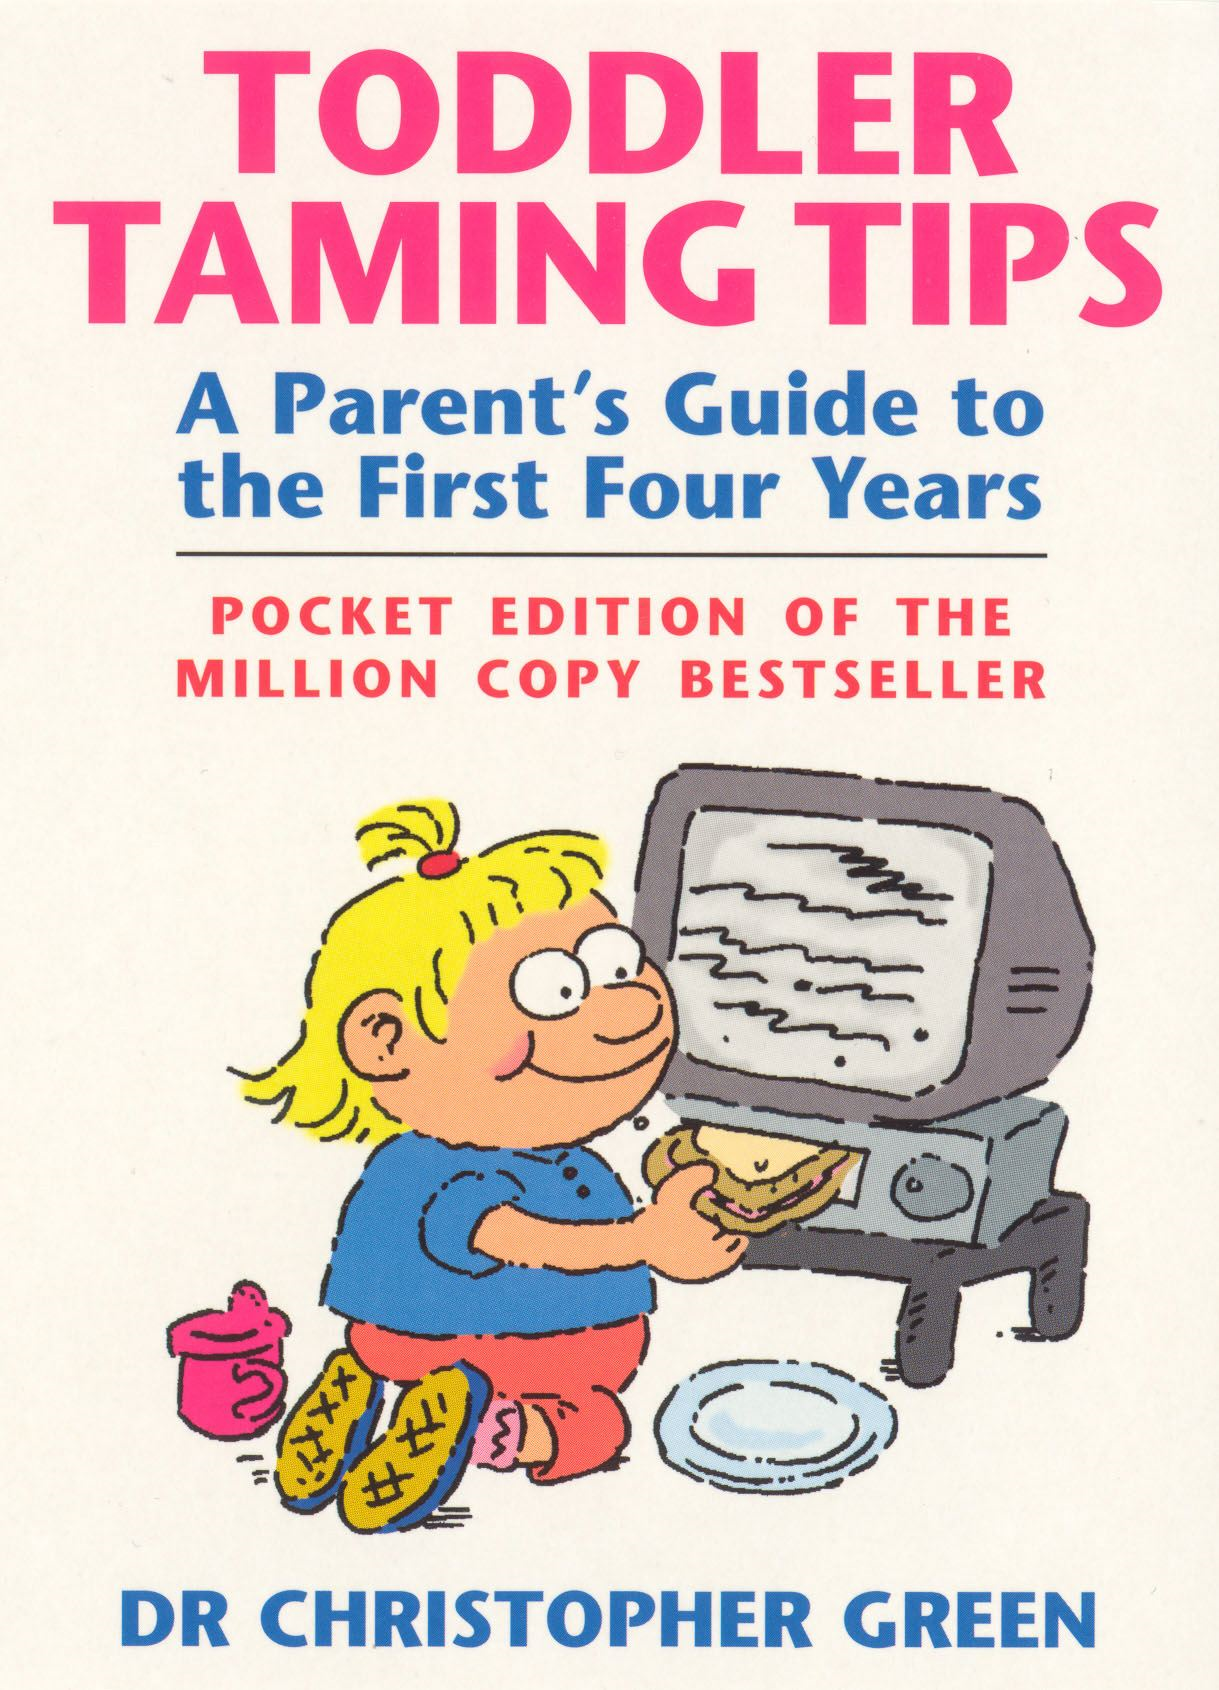 Toddler Taming Tips A Parent's Guide to the First Four Years - Pocket Edition